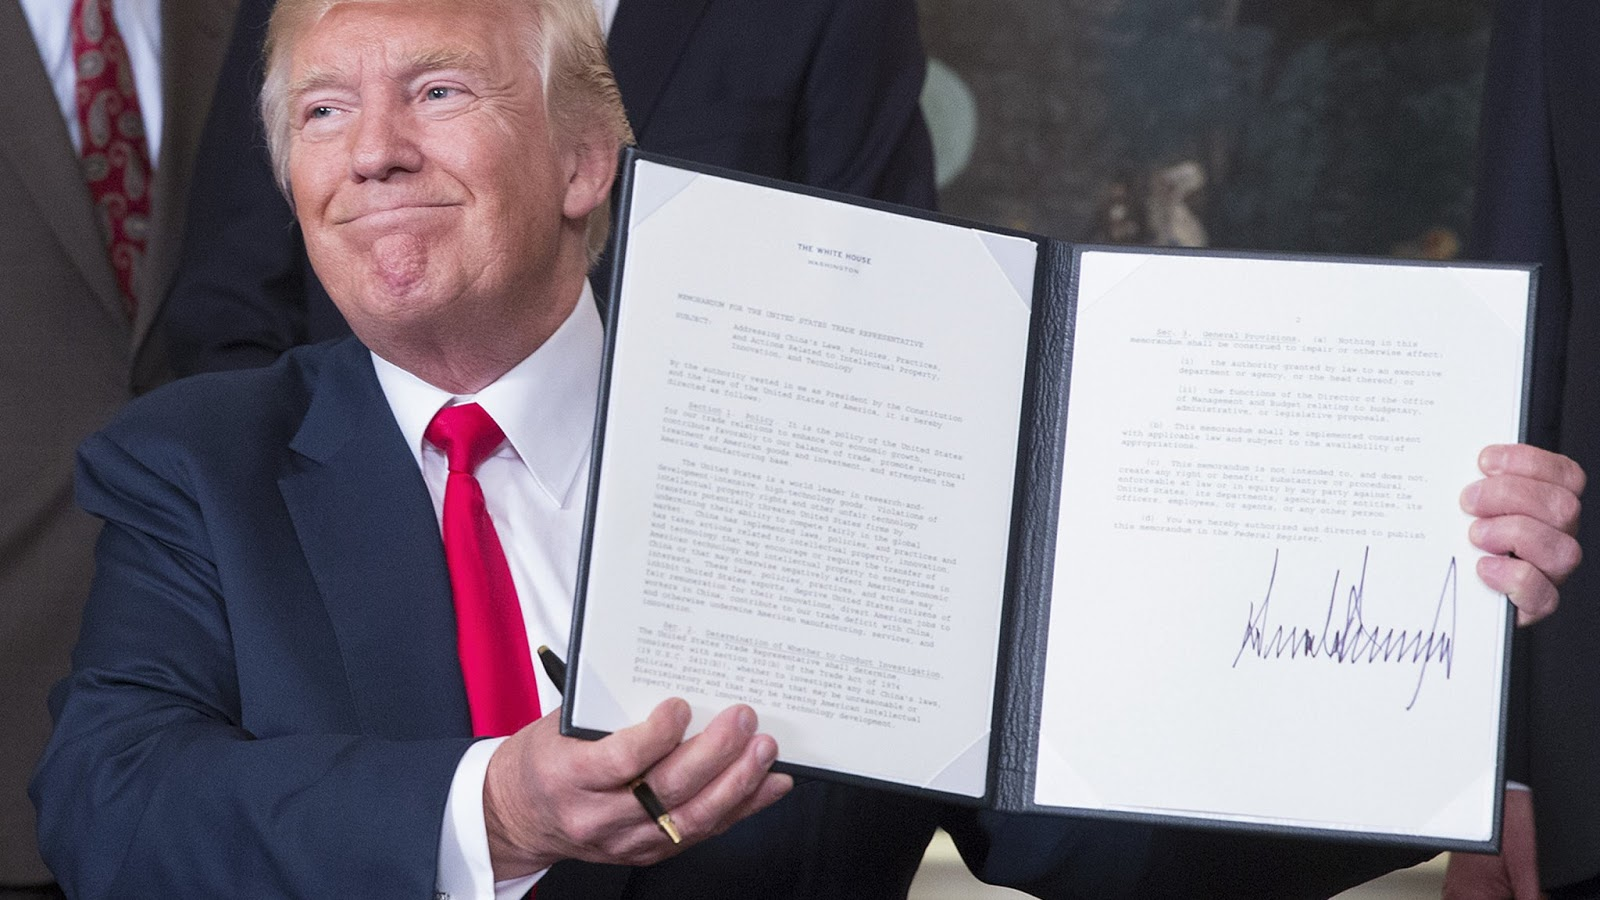 Trump's weak case against China: Opinion